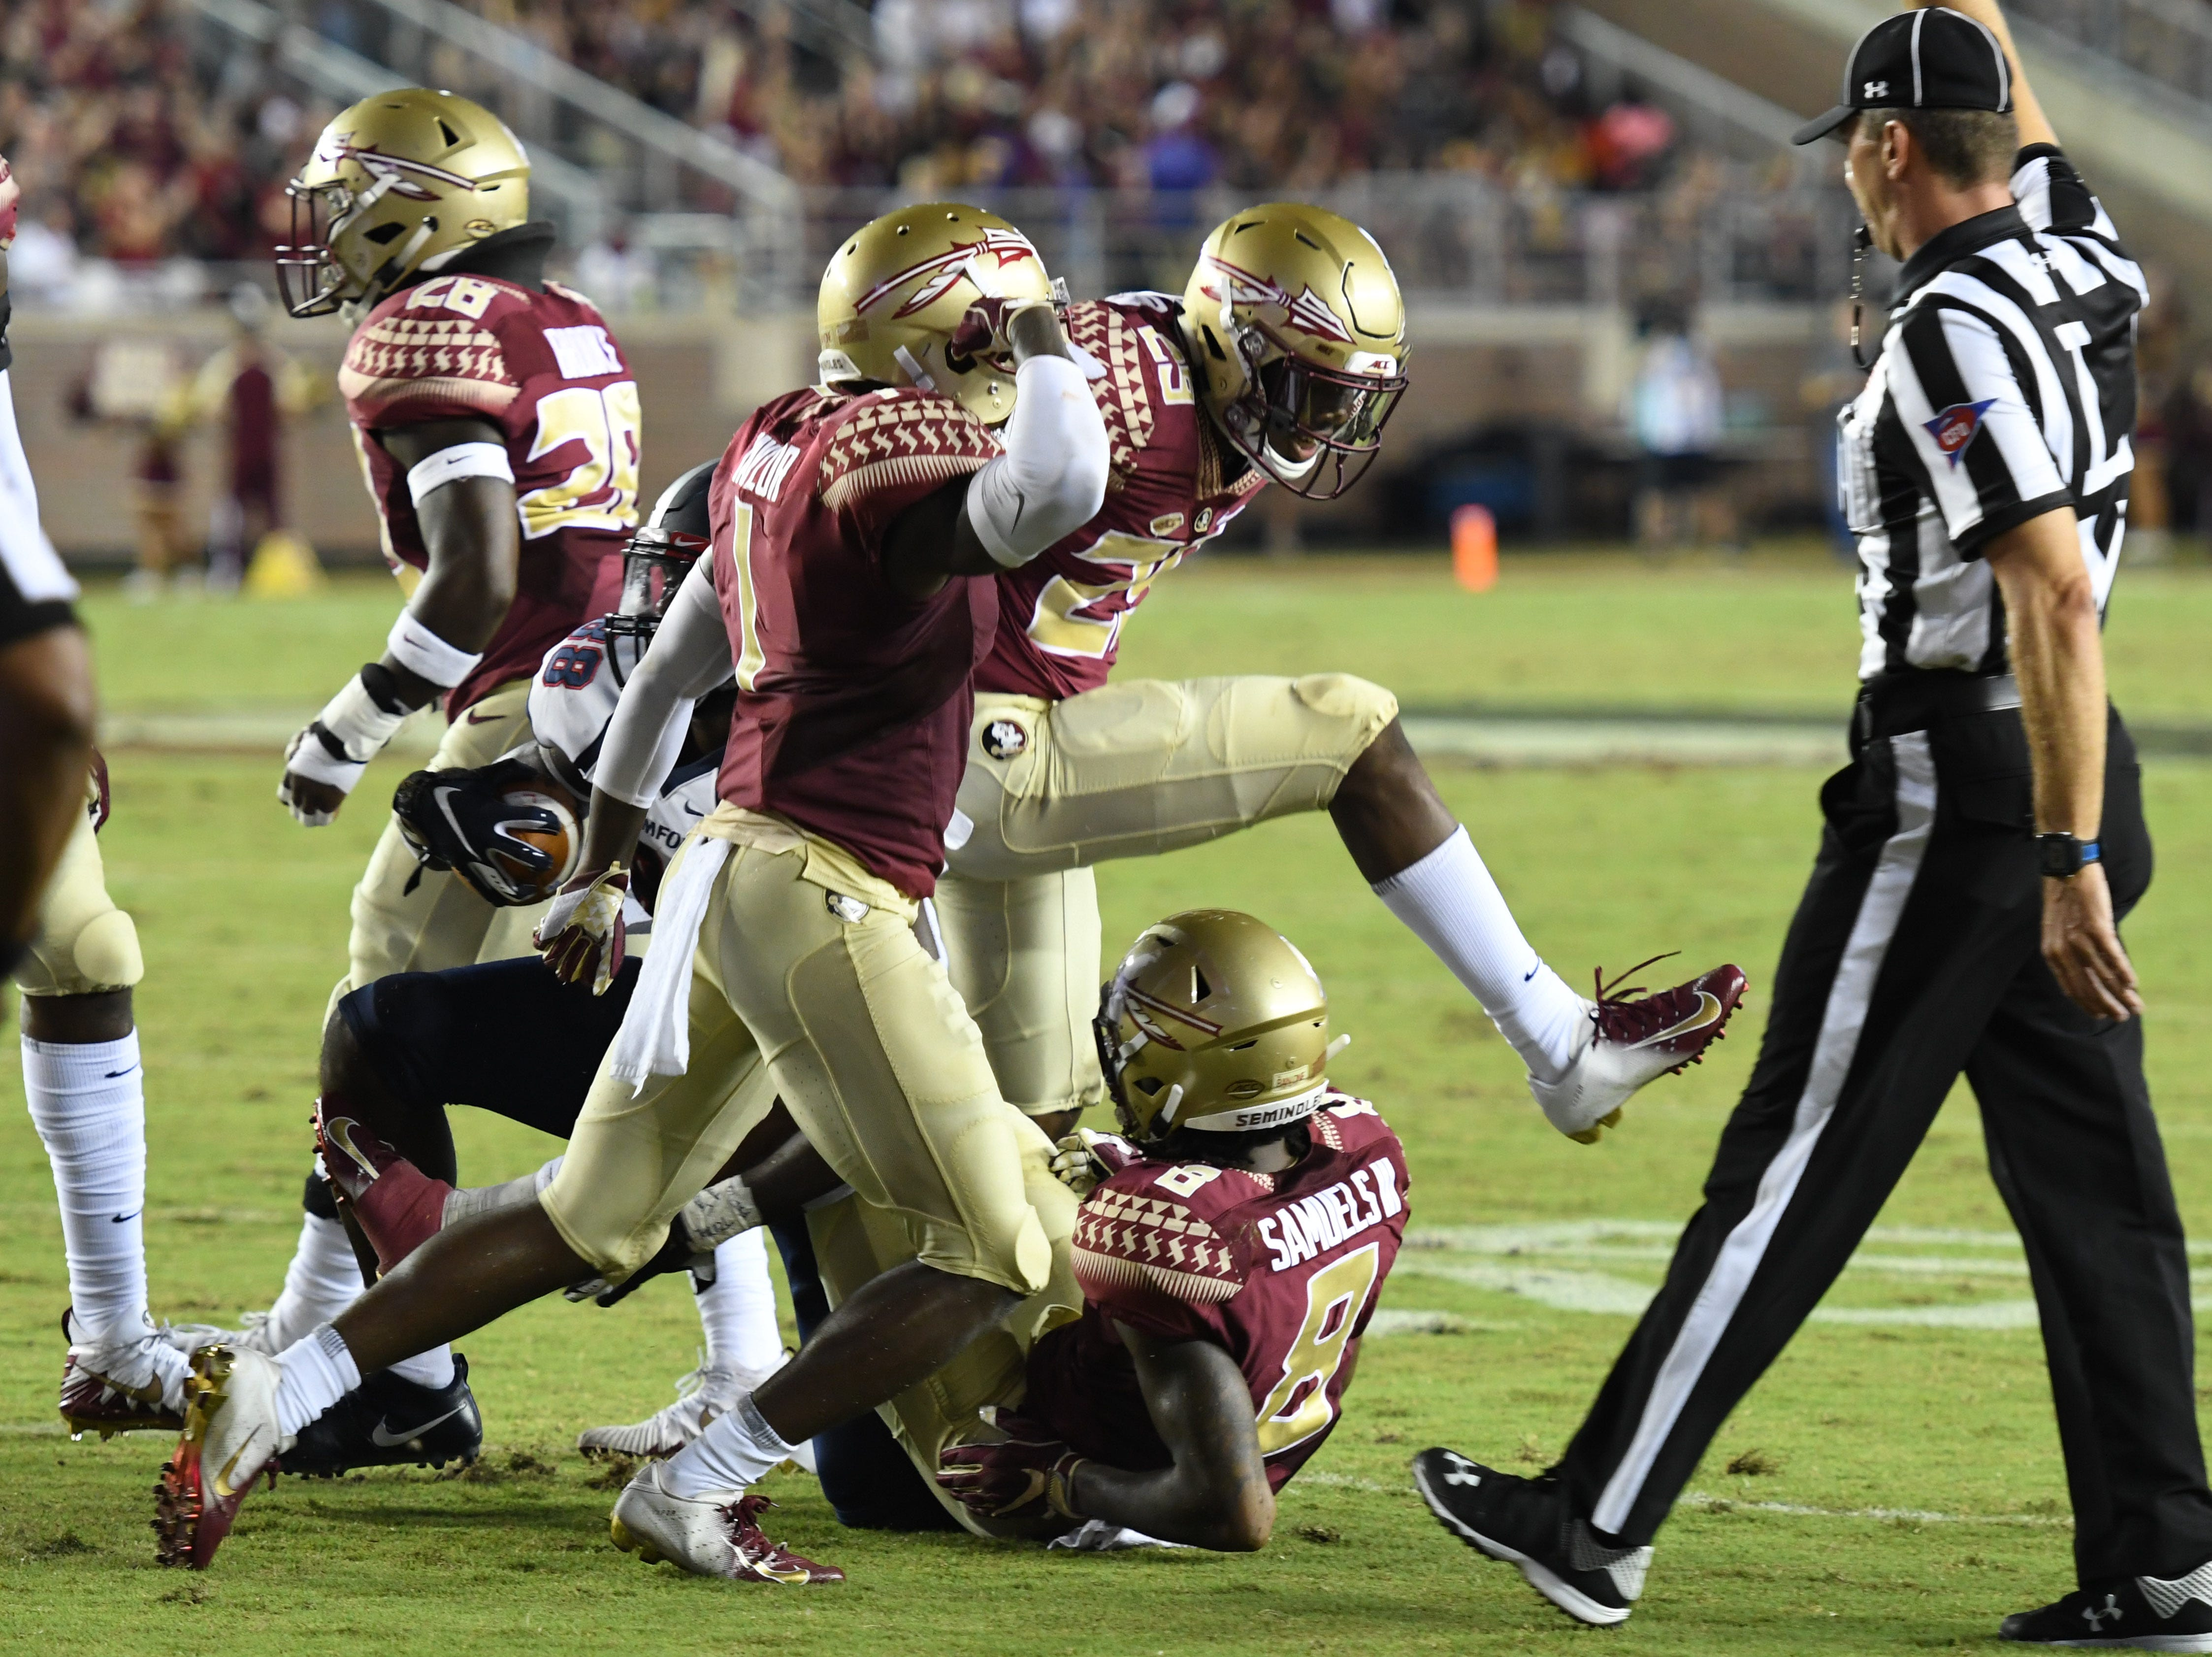 FSU's defense with a group tackle during the second quarter of FSU's game against Samford on Saturday night at Doak Campbell Stadium.